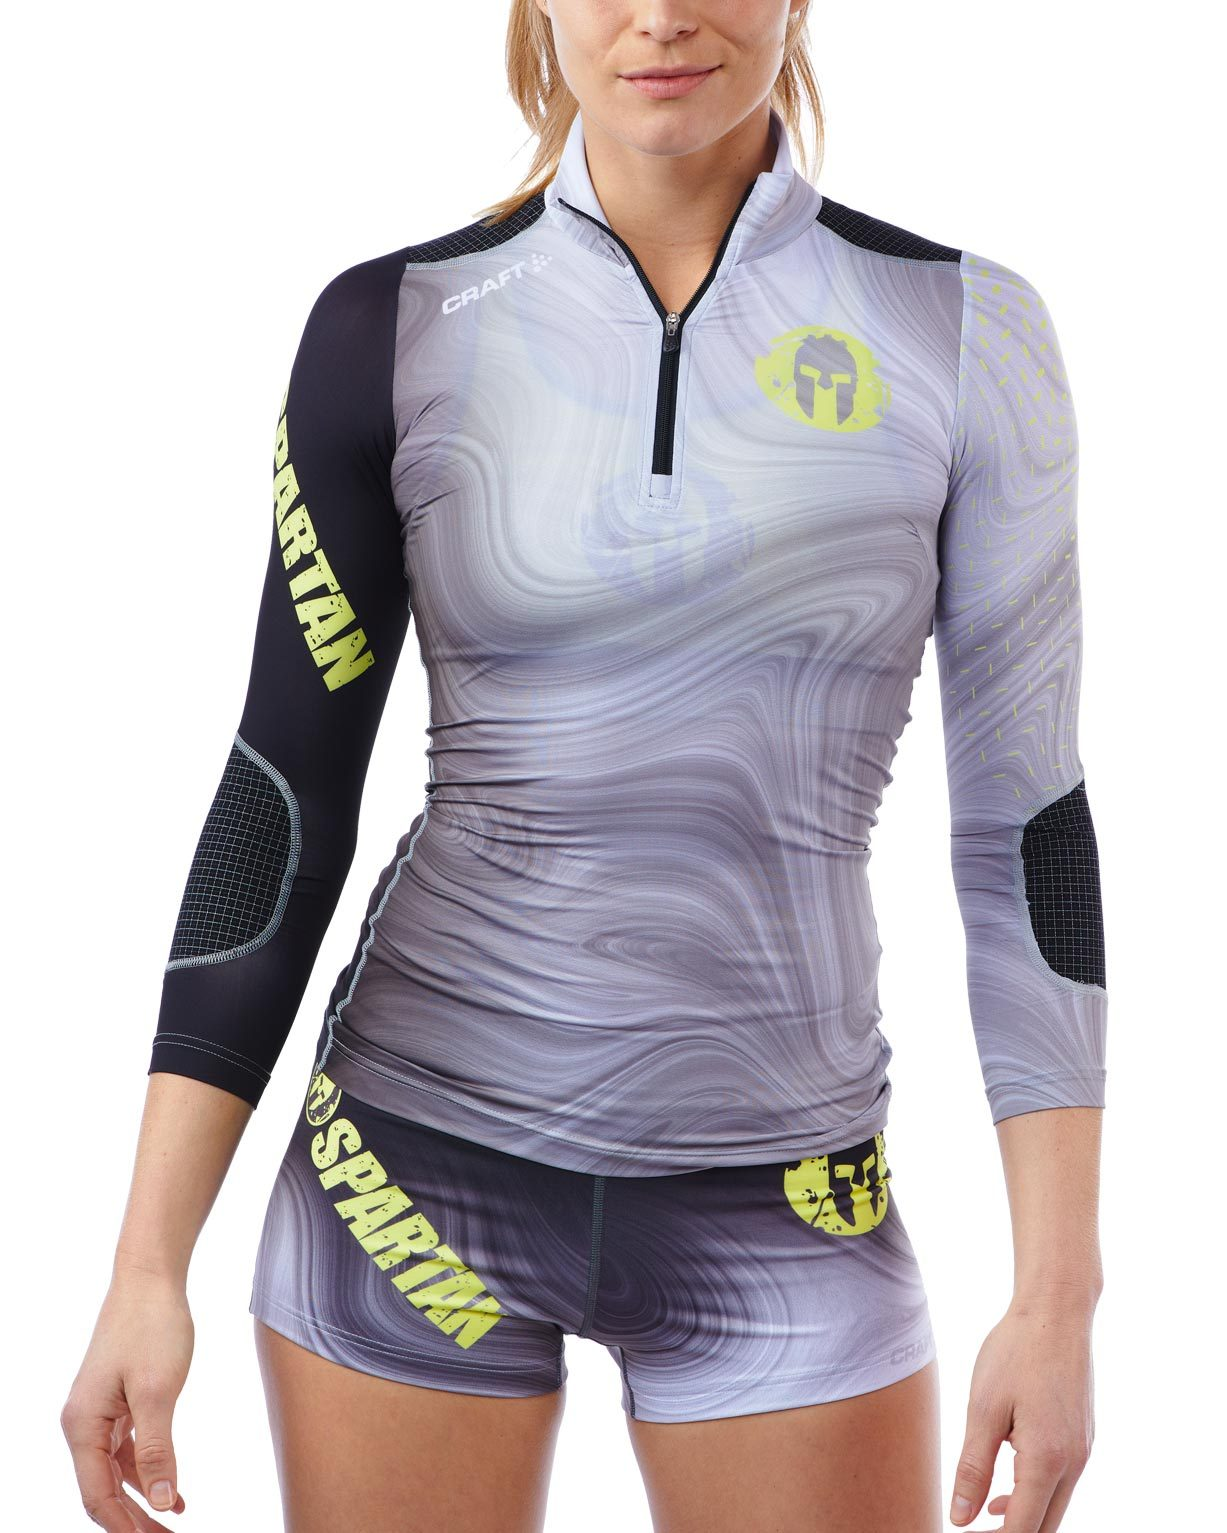 CRAFT SPARTAN By CRAFT Delta Half Zip Top - Women's Gray/Snap Yellow XS